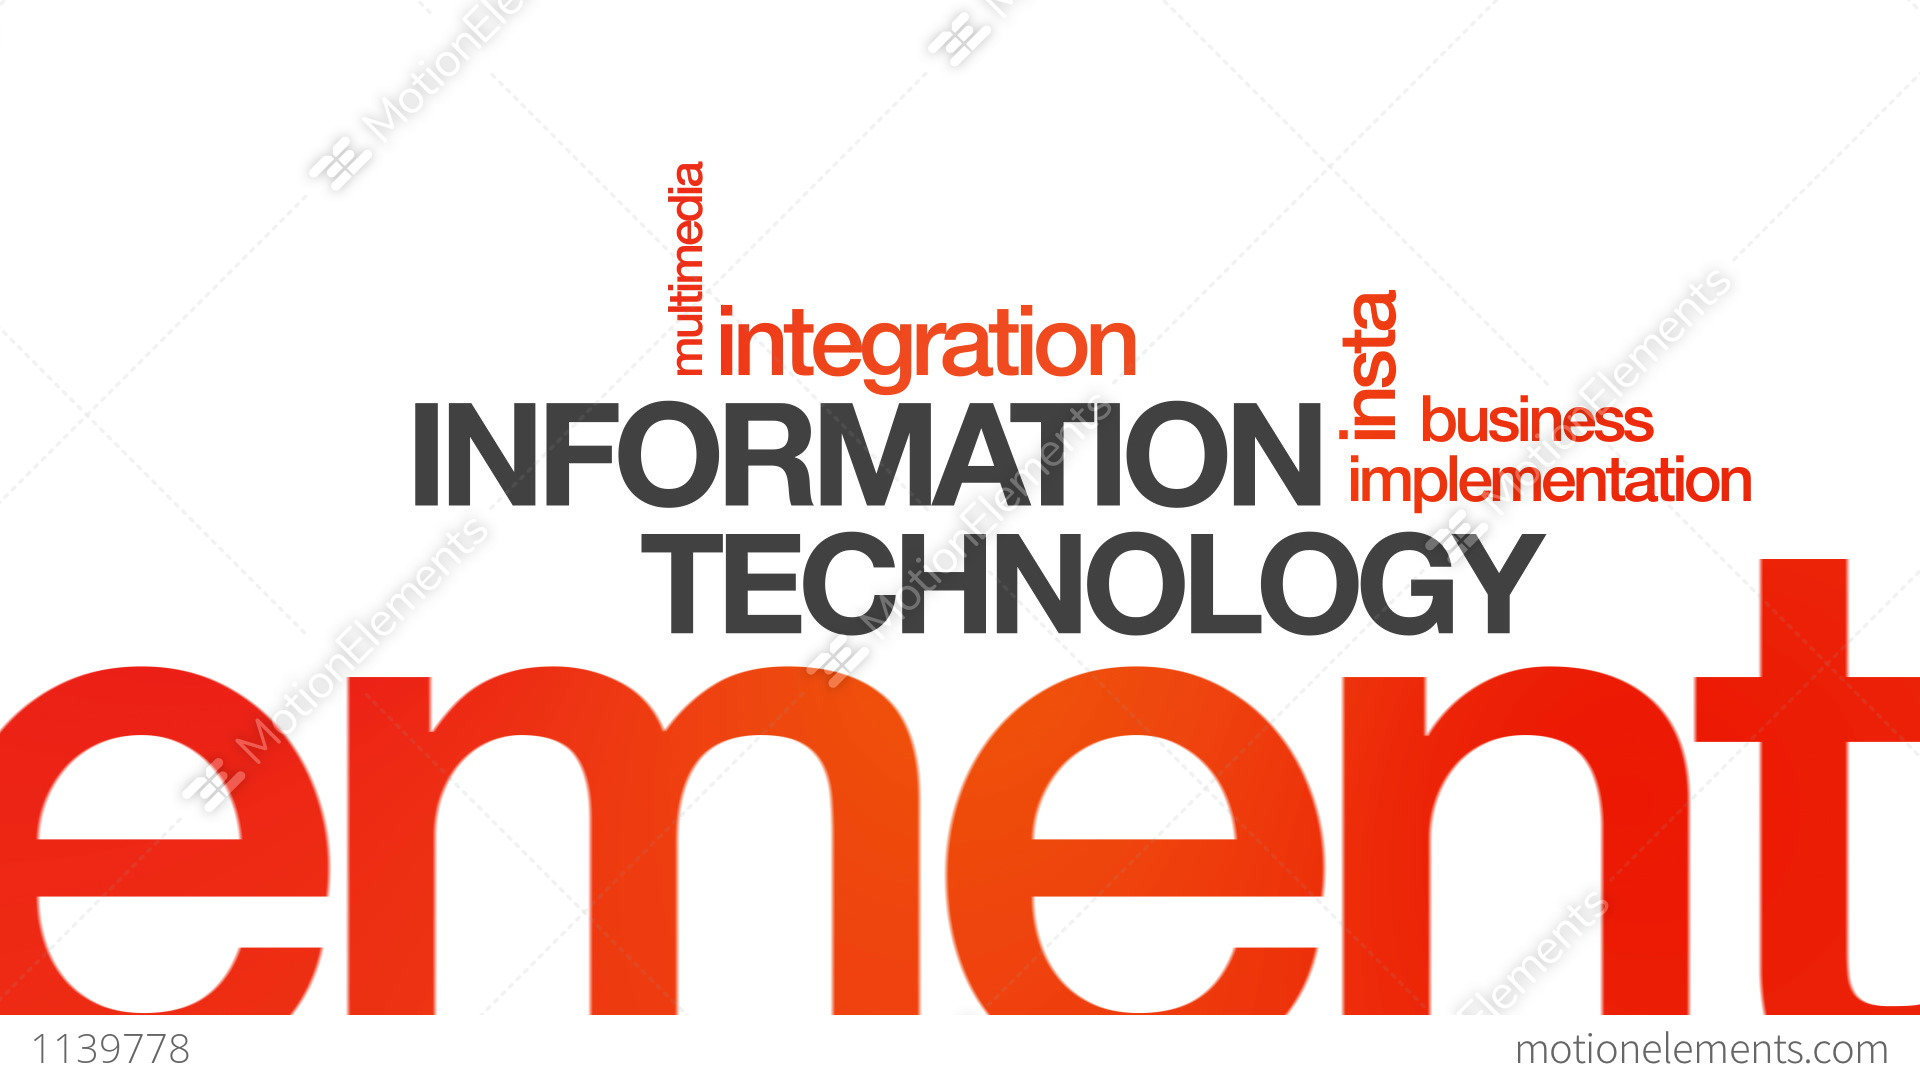 information and technology Chevron information technology company integrates it to connect people, ideas, processes and data learn more about technology marketing  technologies at work.